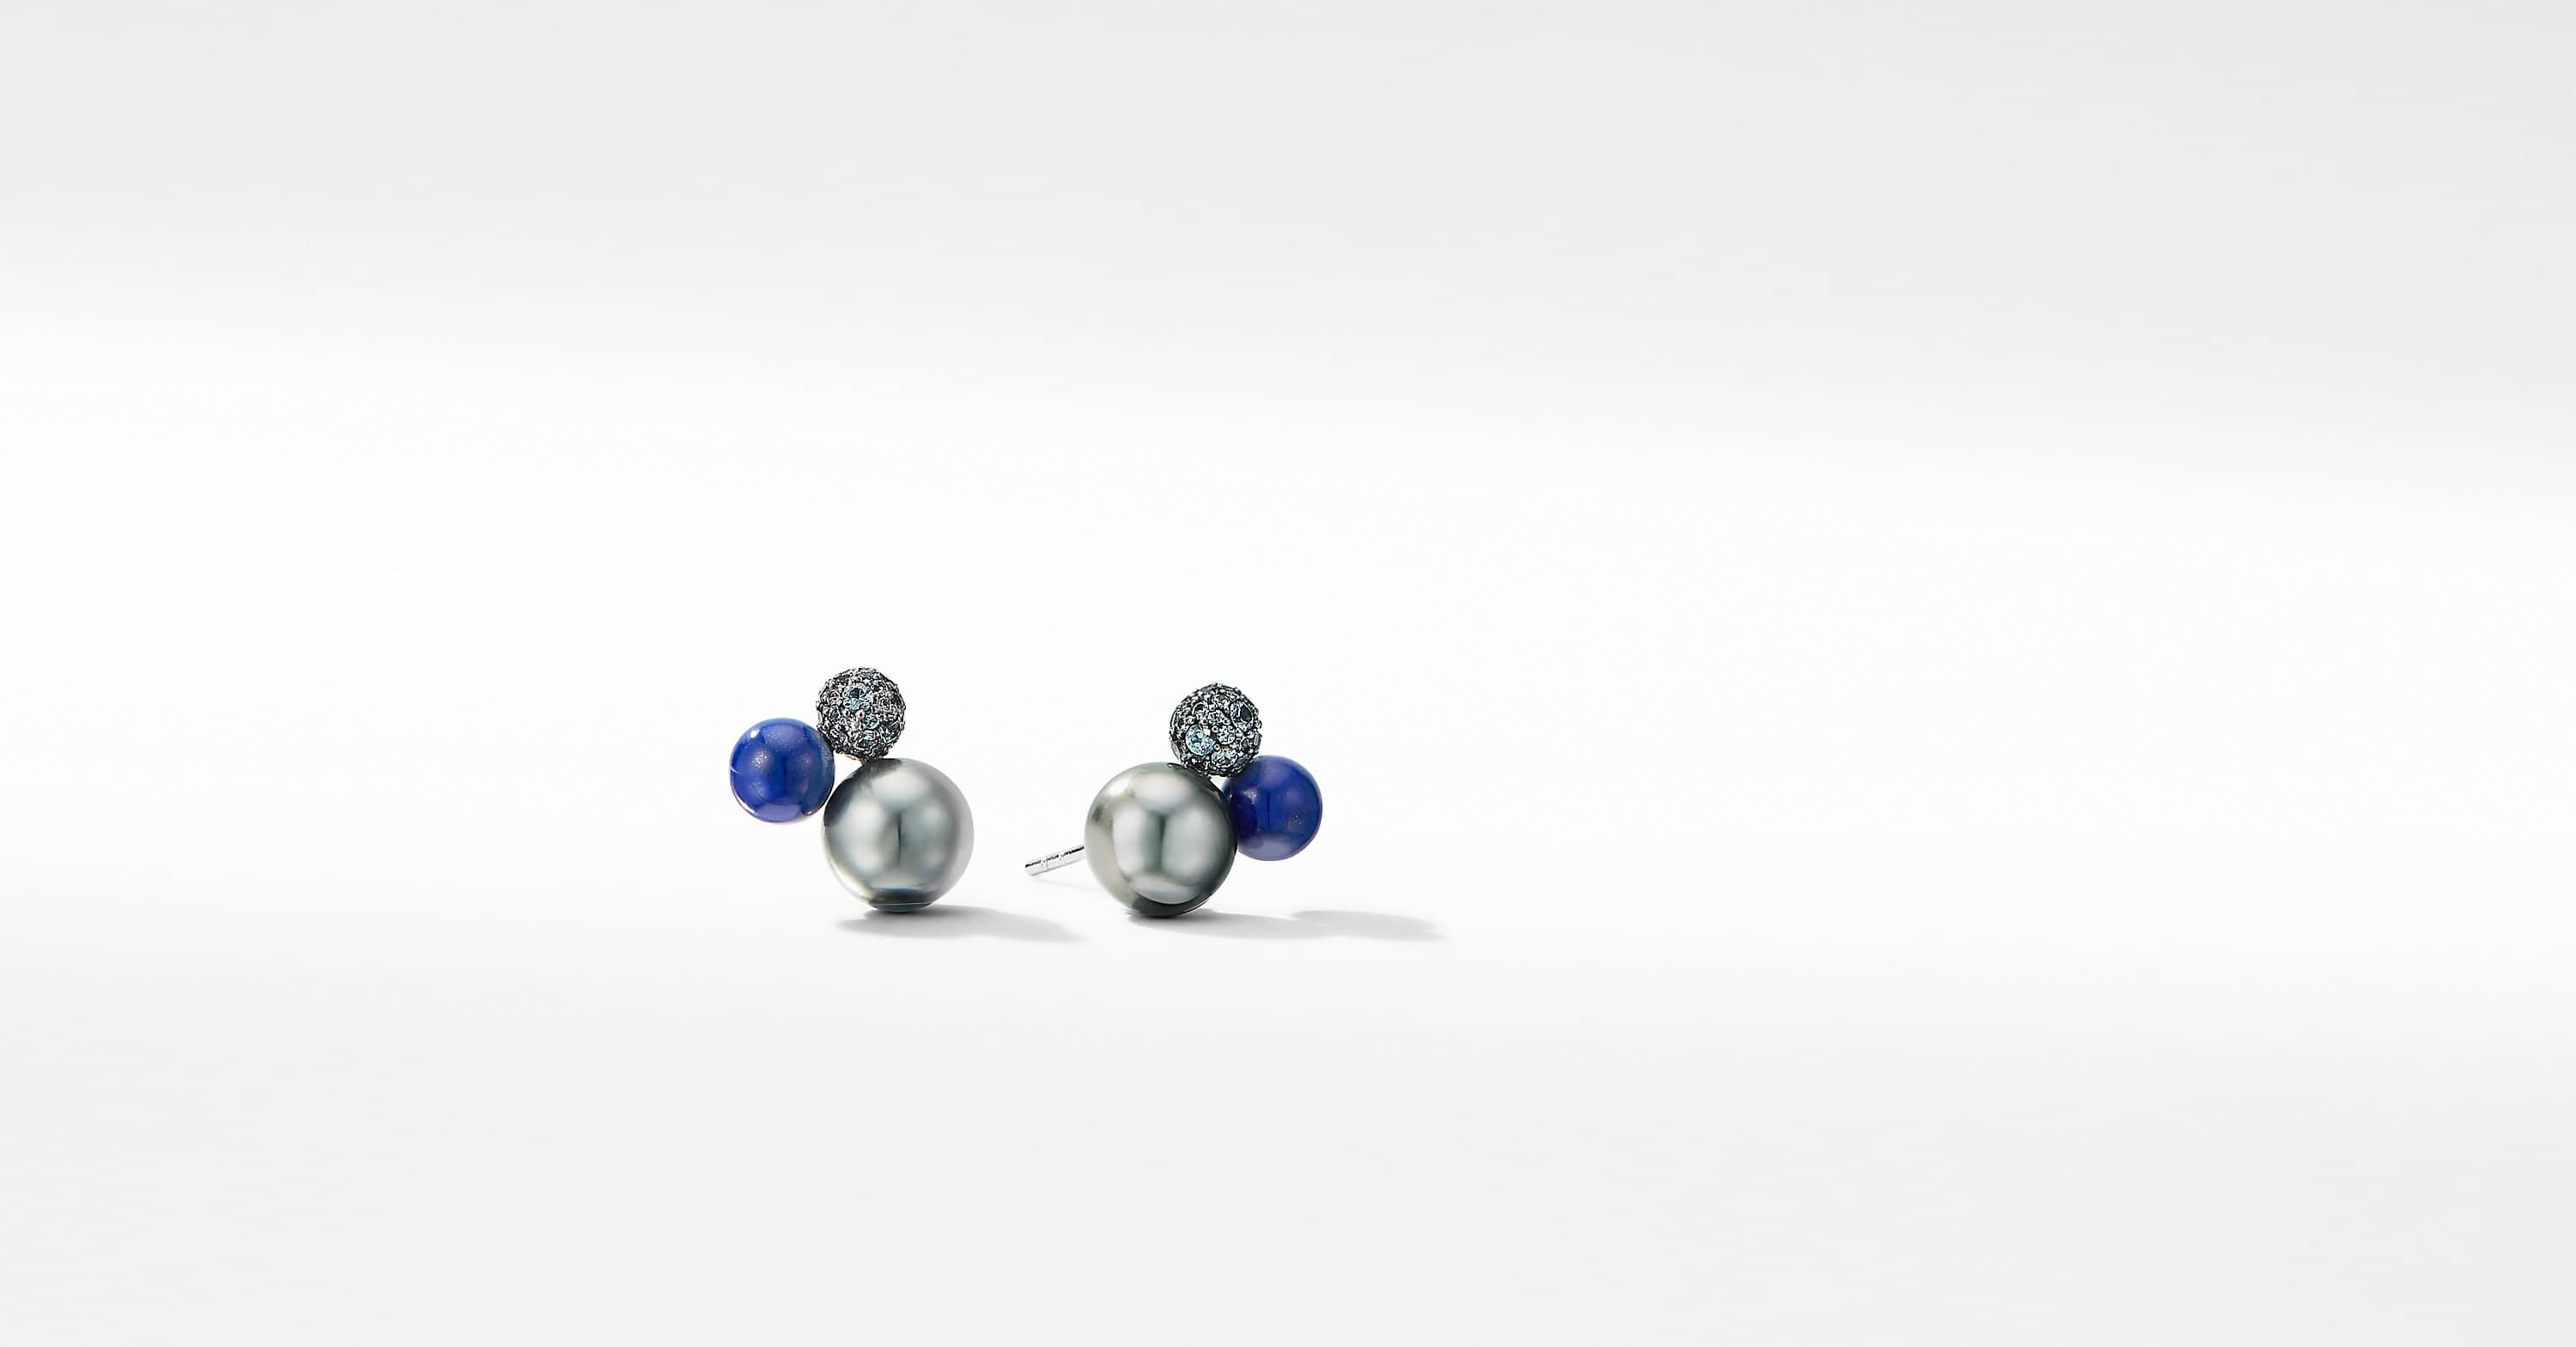 Solari Cluster Stud Earrings in 18K White Gold